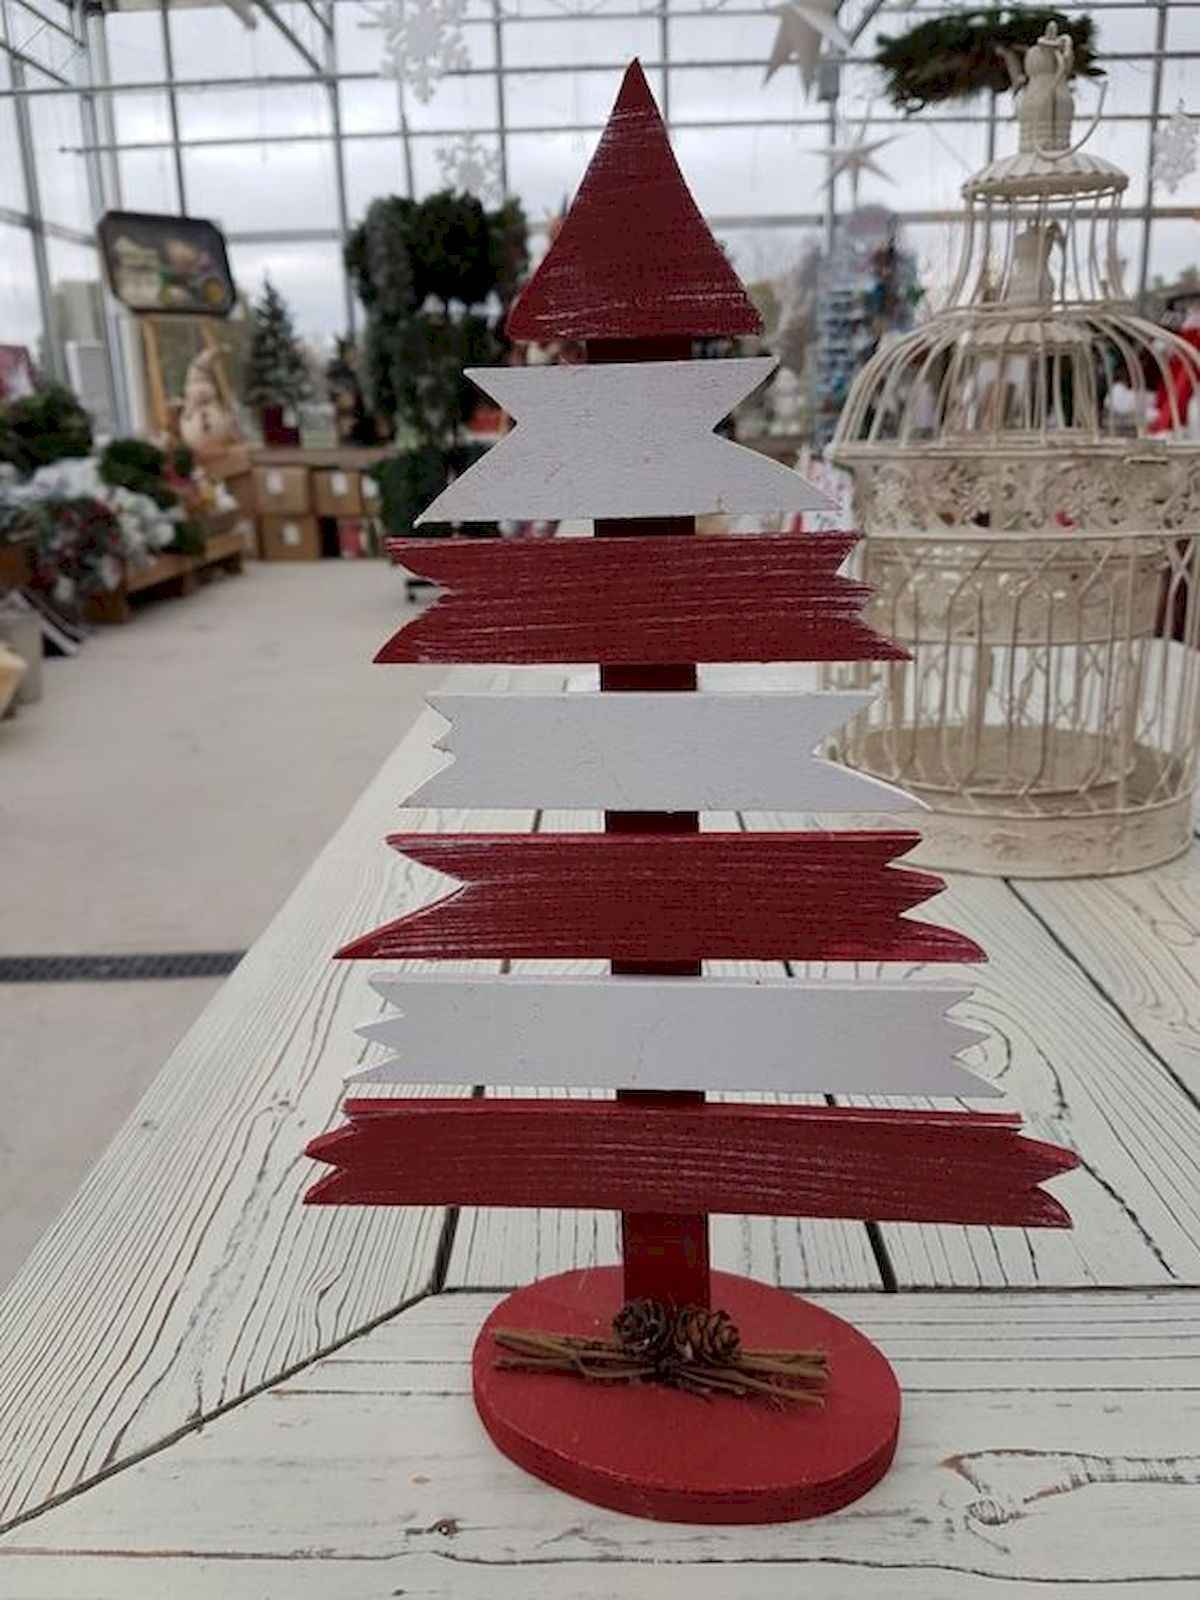 30 rustic and vintage christmas tree ideas decorations (11)